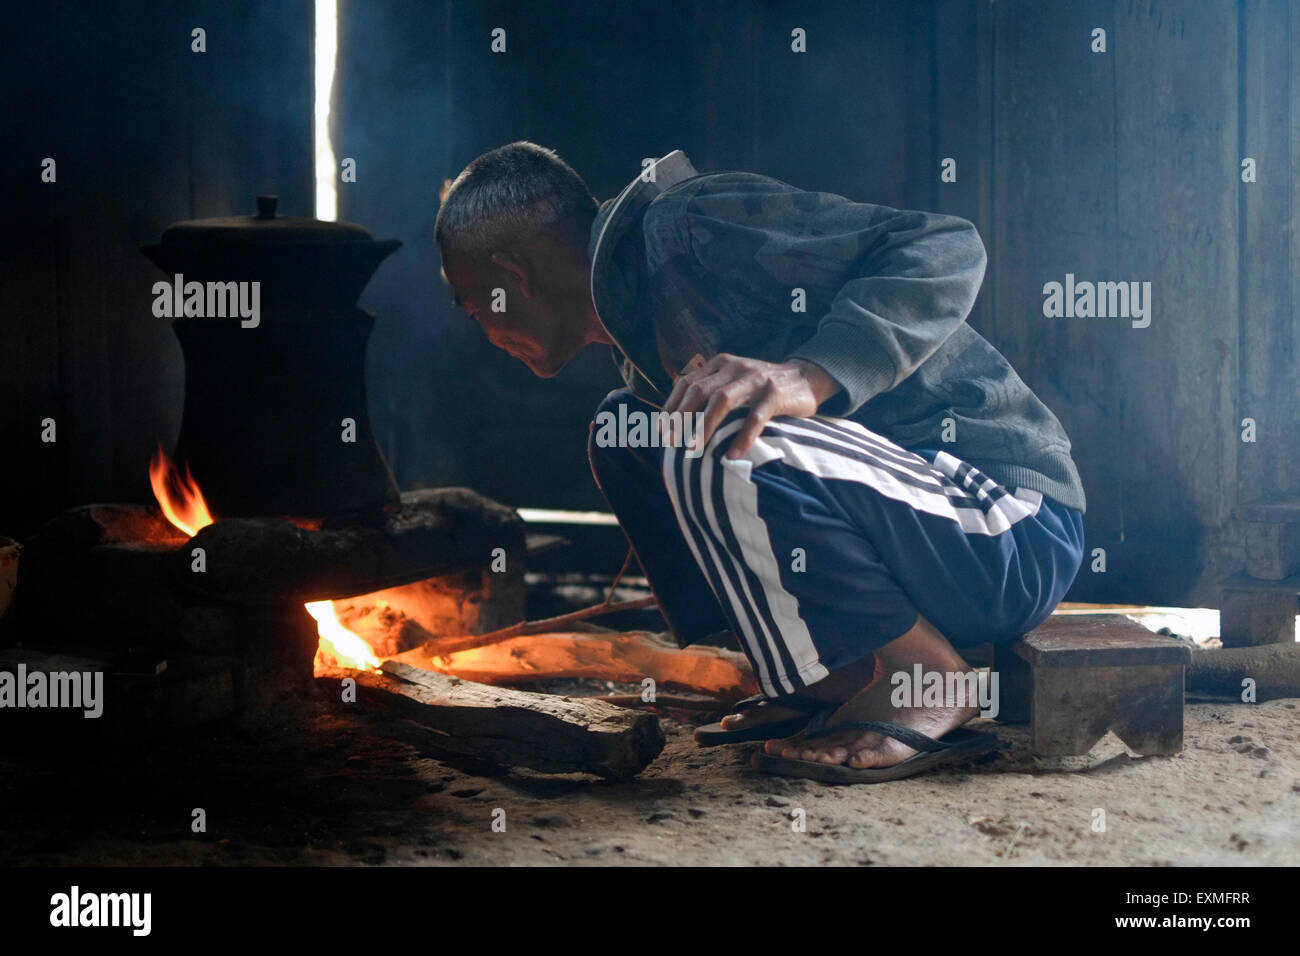 older man cooking with an old pot over a wood burning open fire in a rural house on mount lawu near solo java indonesia - Stock Image